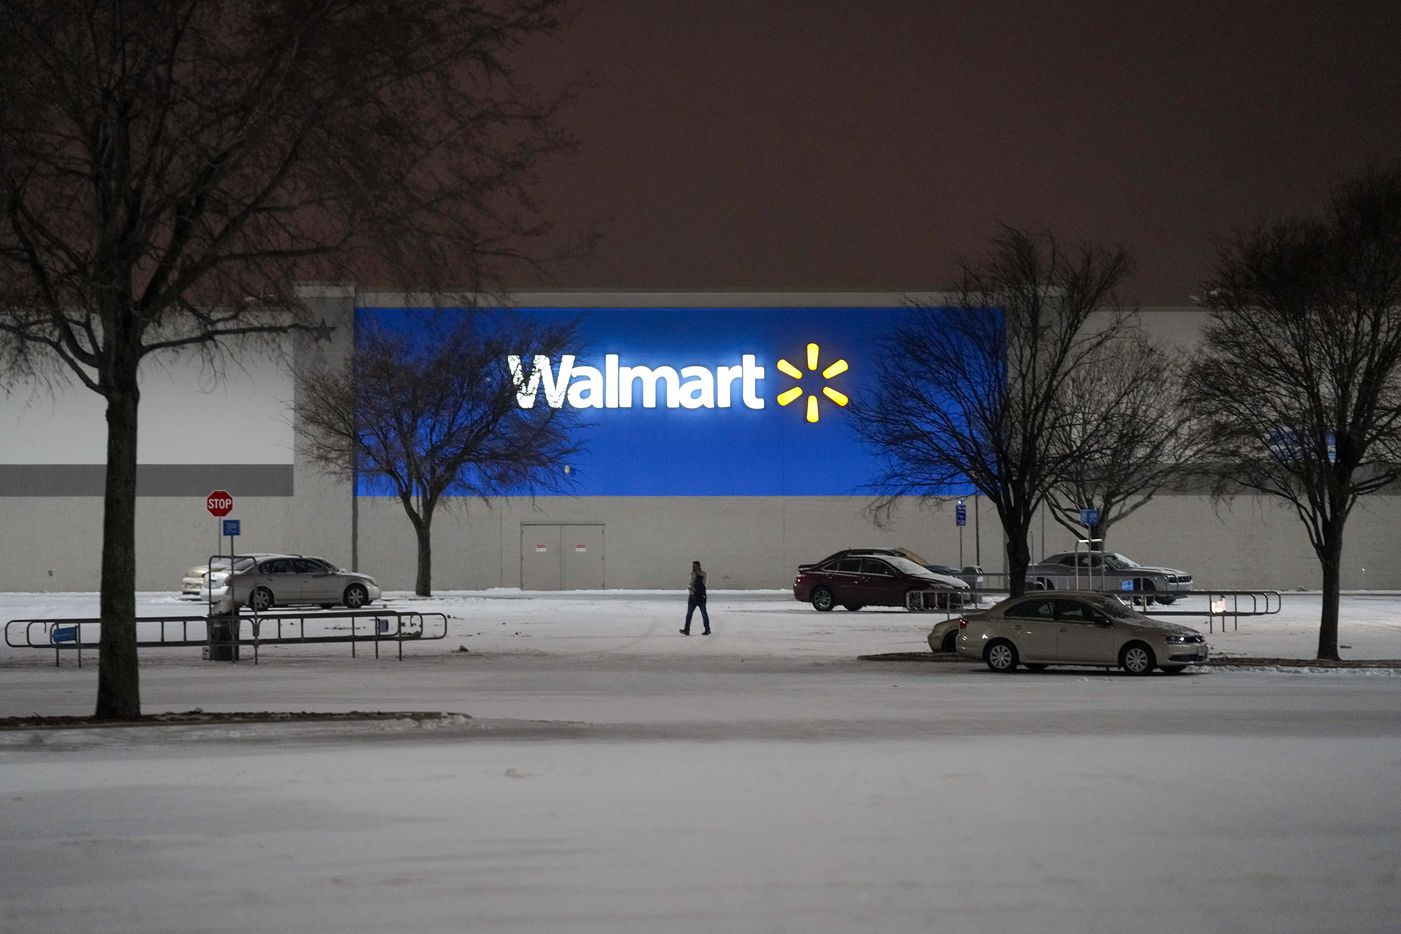 The parking lot of a Walmart Store on Coit Road empties as a second winter storm brought more snow and continued freezing temperatures to North Texas on Tuesday night, Feb. 16, 2021 in Plano. Walmart announced on Tuesday the chain would be closing 415 stores in Texas due to the weather.